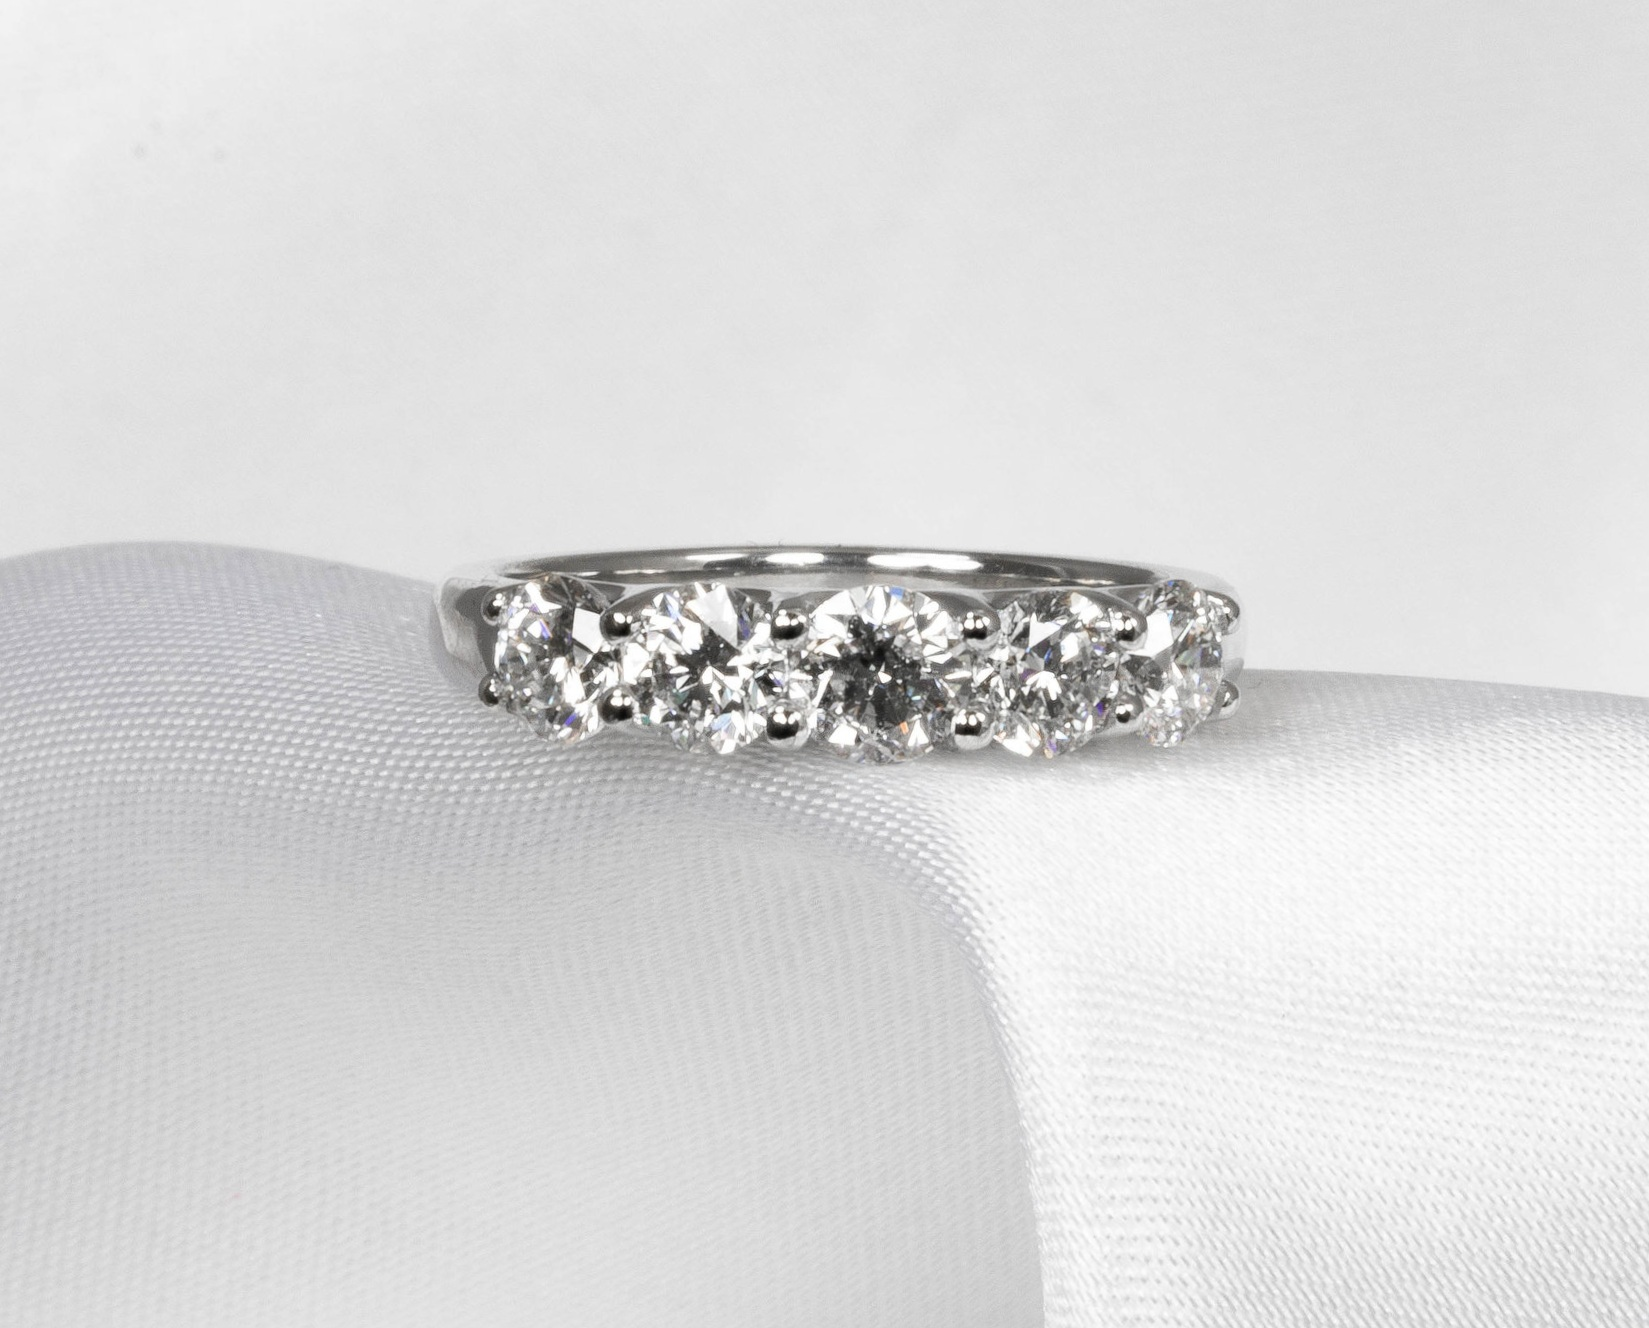 Copy of Five stone claw set platinum ring. Made in Chichester, England.